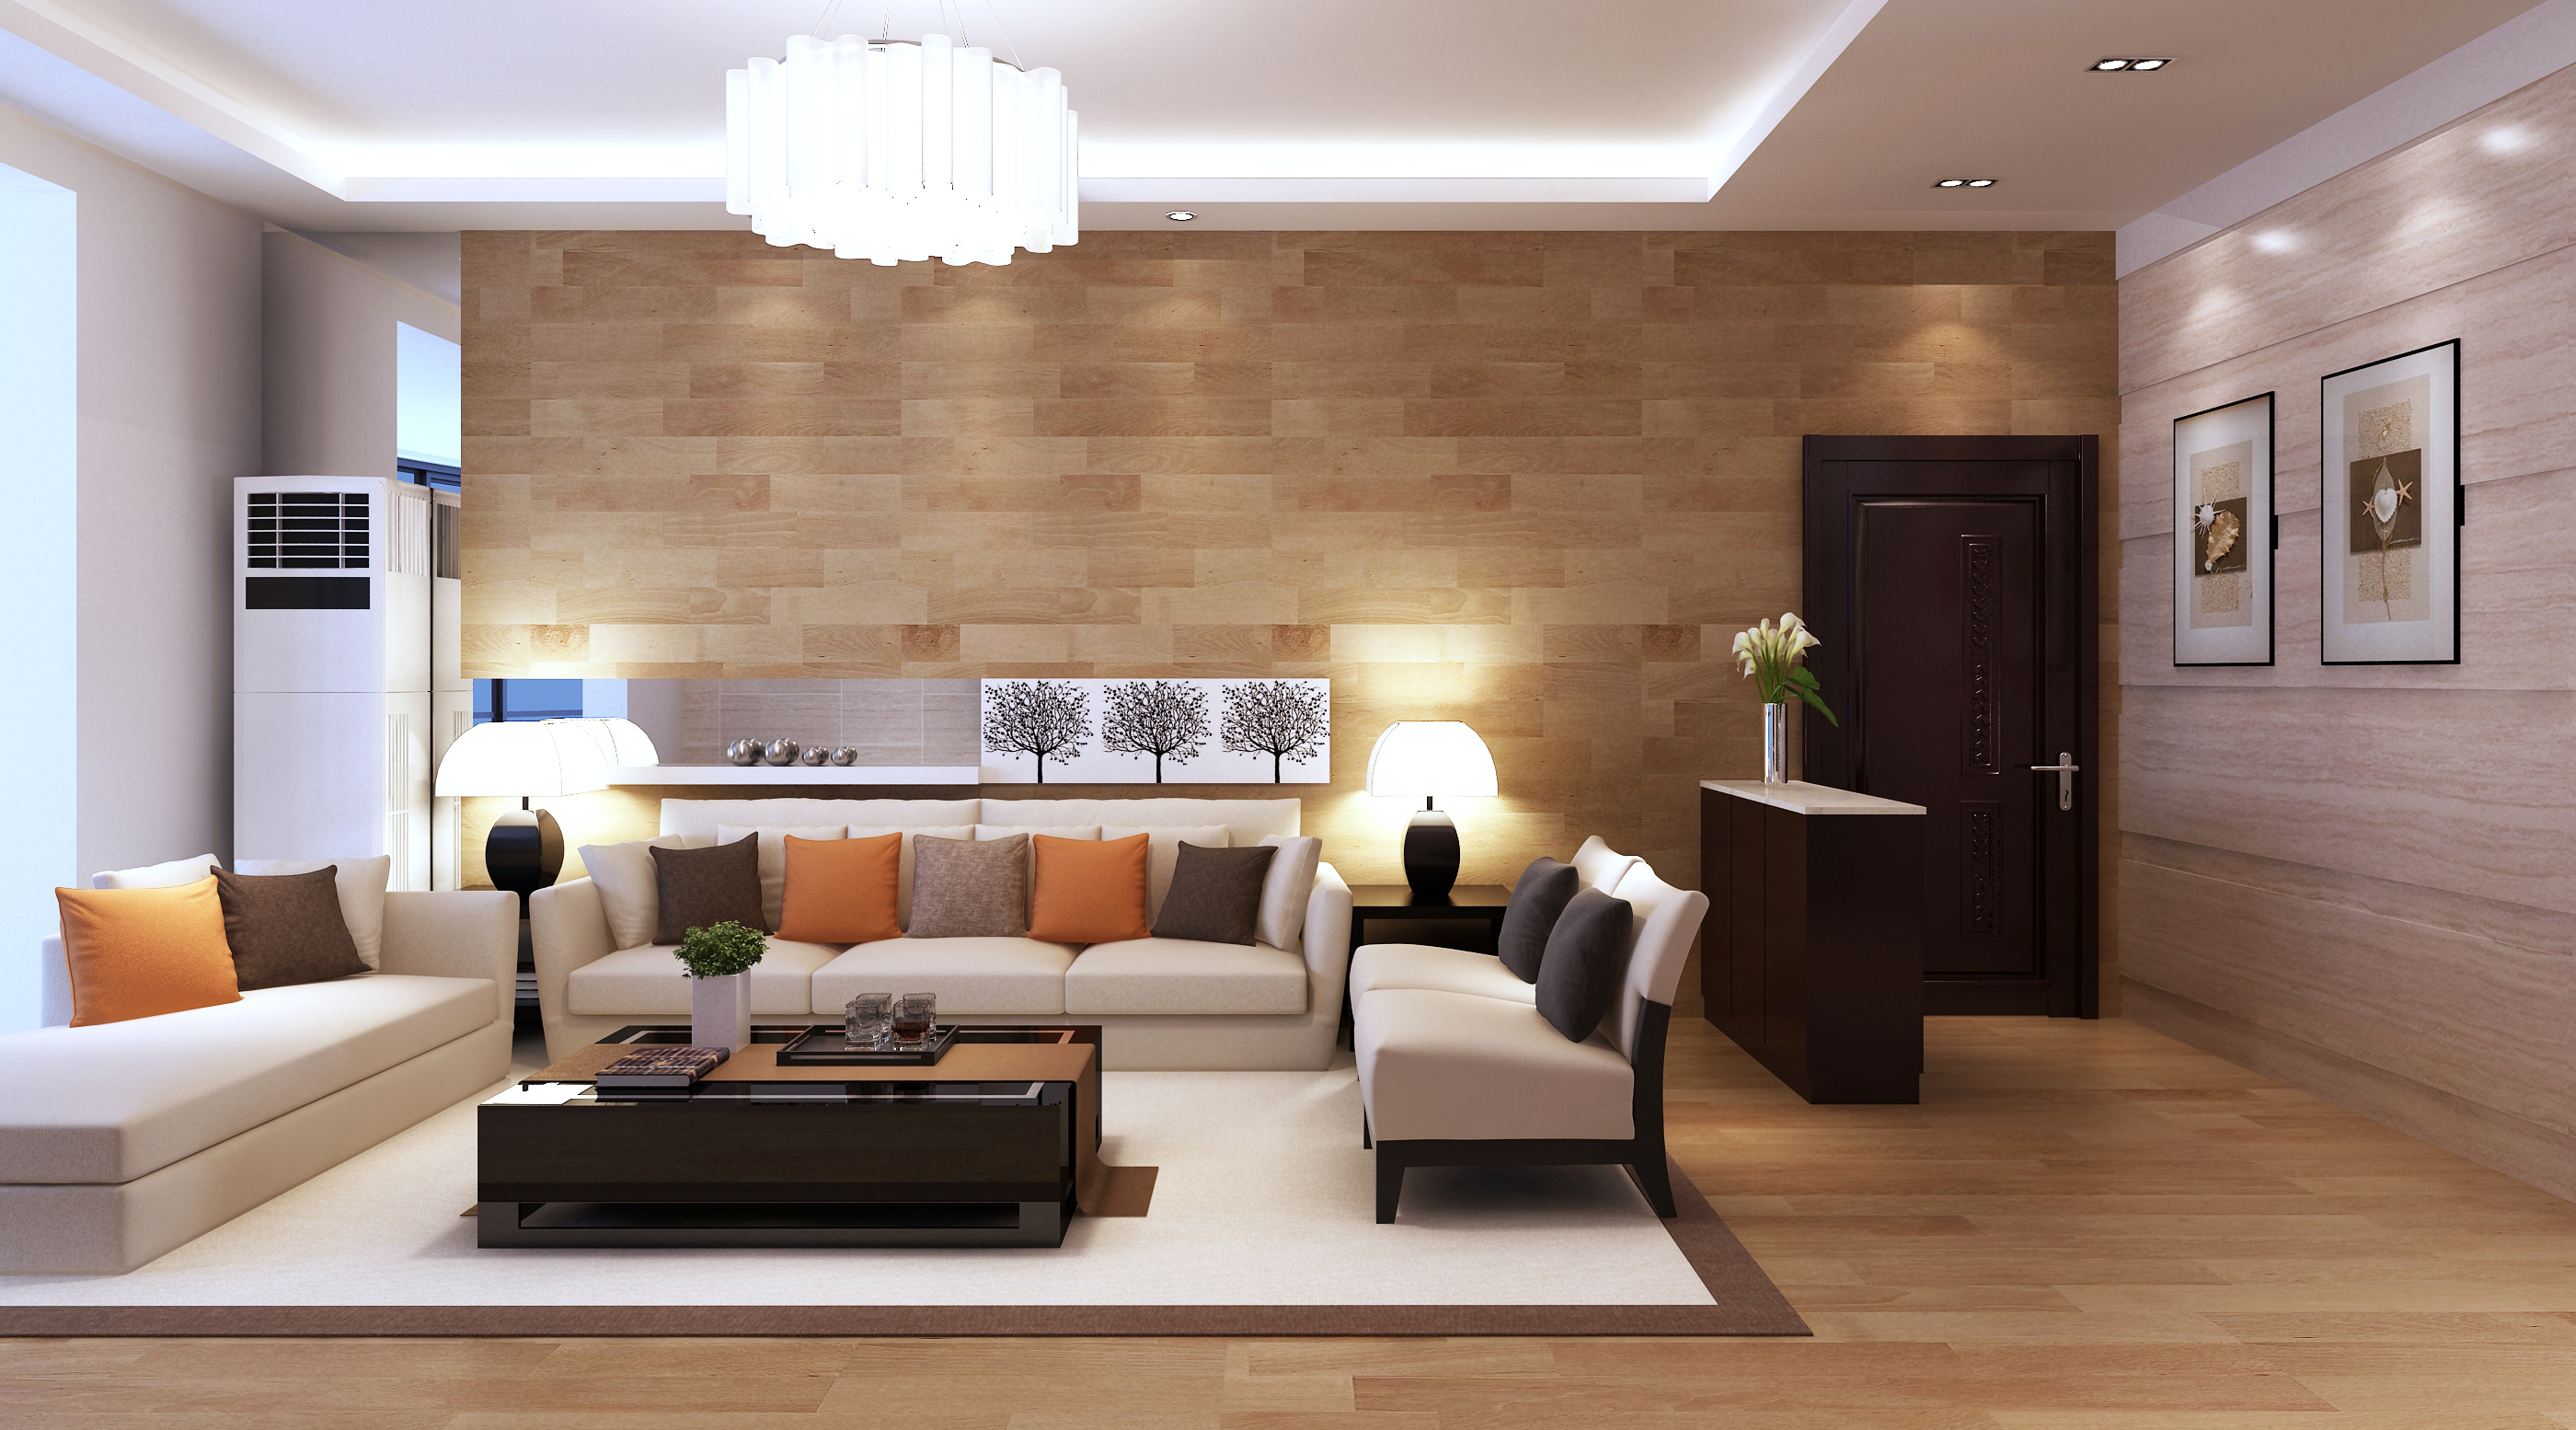 Model Living Room Prepossessing 3D Model Modern Living Room Architectural  Cgtrader Decorating Design